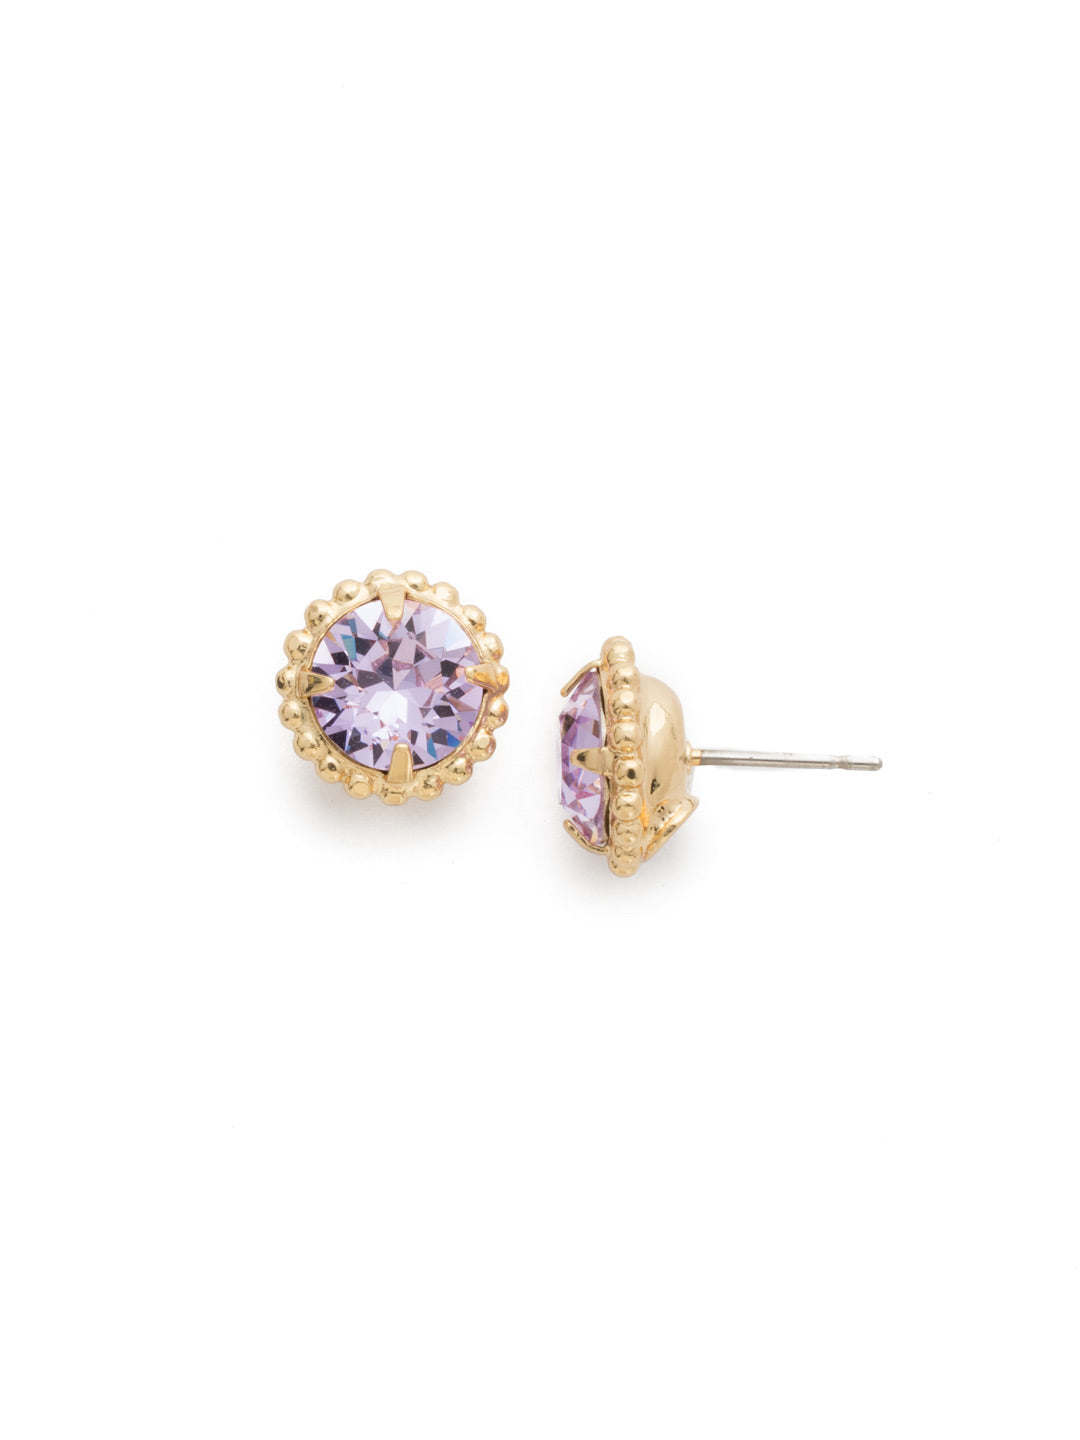 Simplicity Stud Earrings - EBY38BGVI